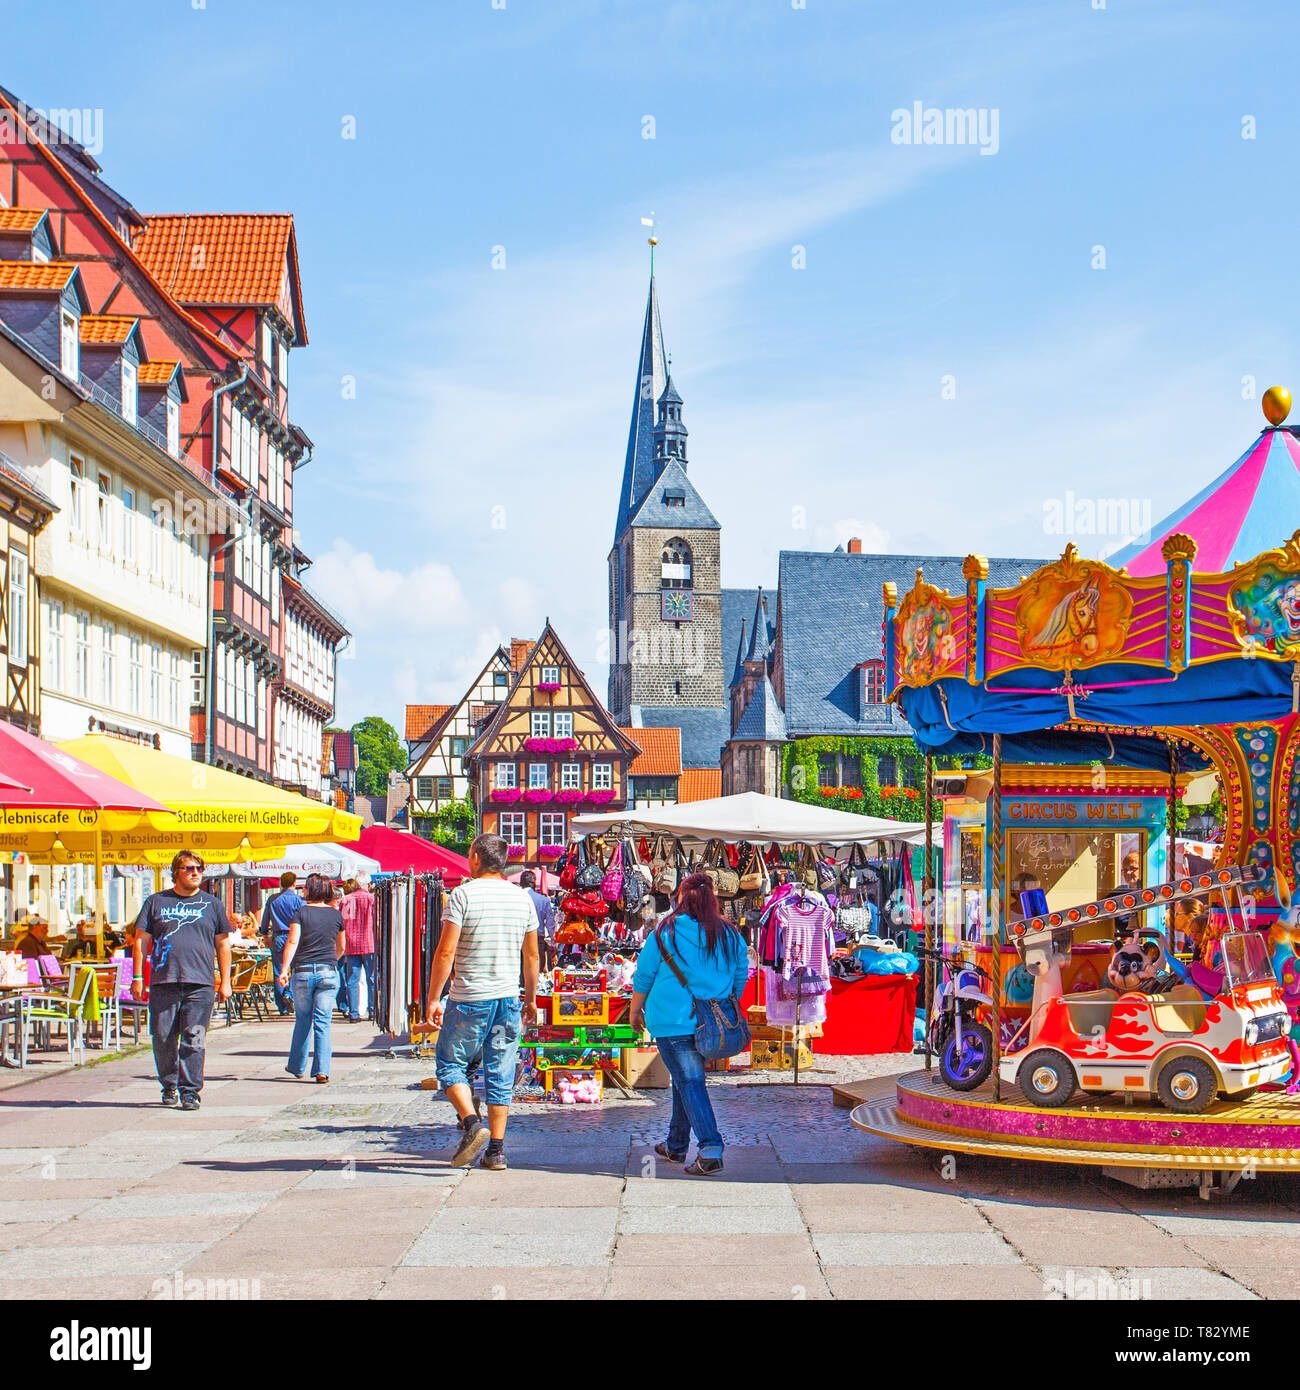 Quedlinburg, Germany - August 12, 2012: Fair in Markert Square and walking people in Quedlinburg Stock Photo